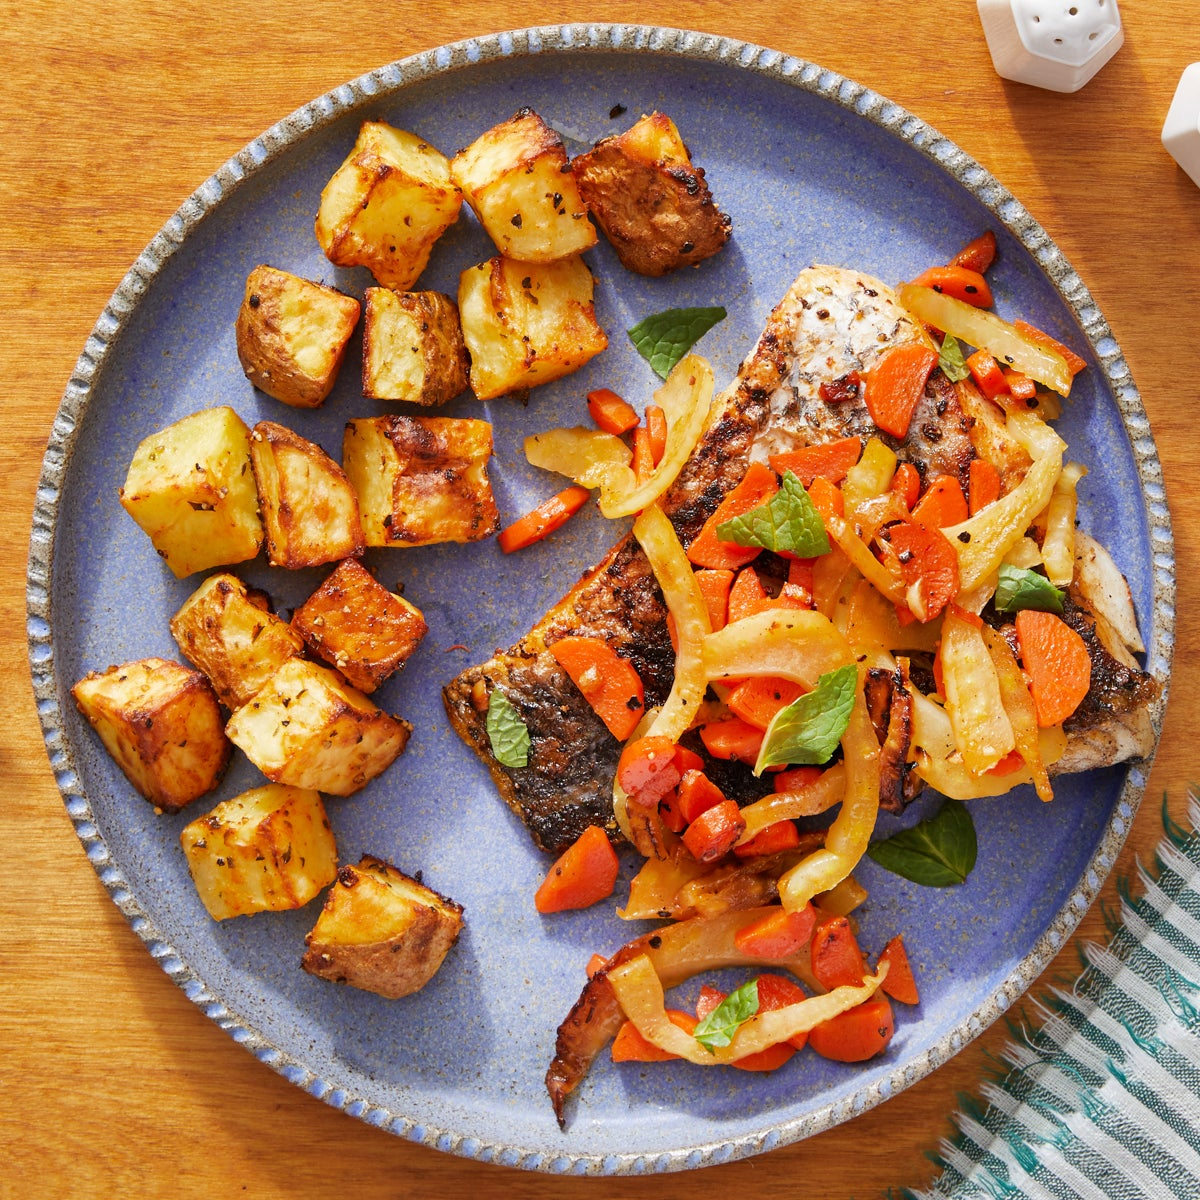 Barramundi & Orange-Glazed Vegetables with Roasted Potatoes